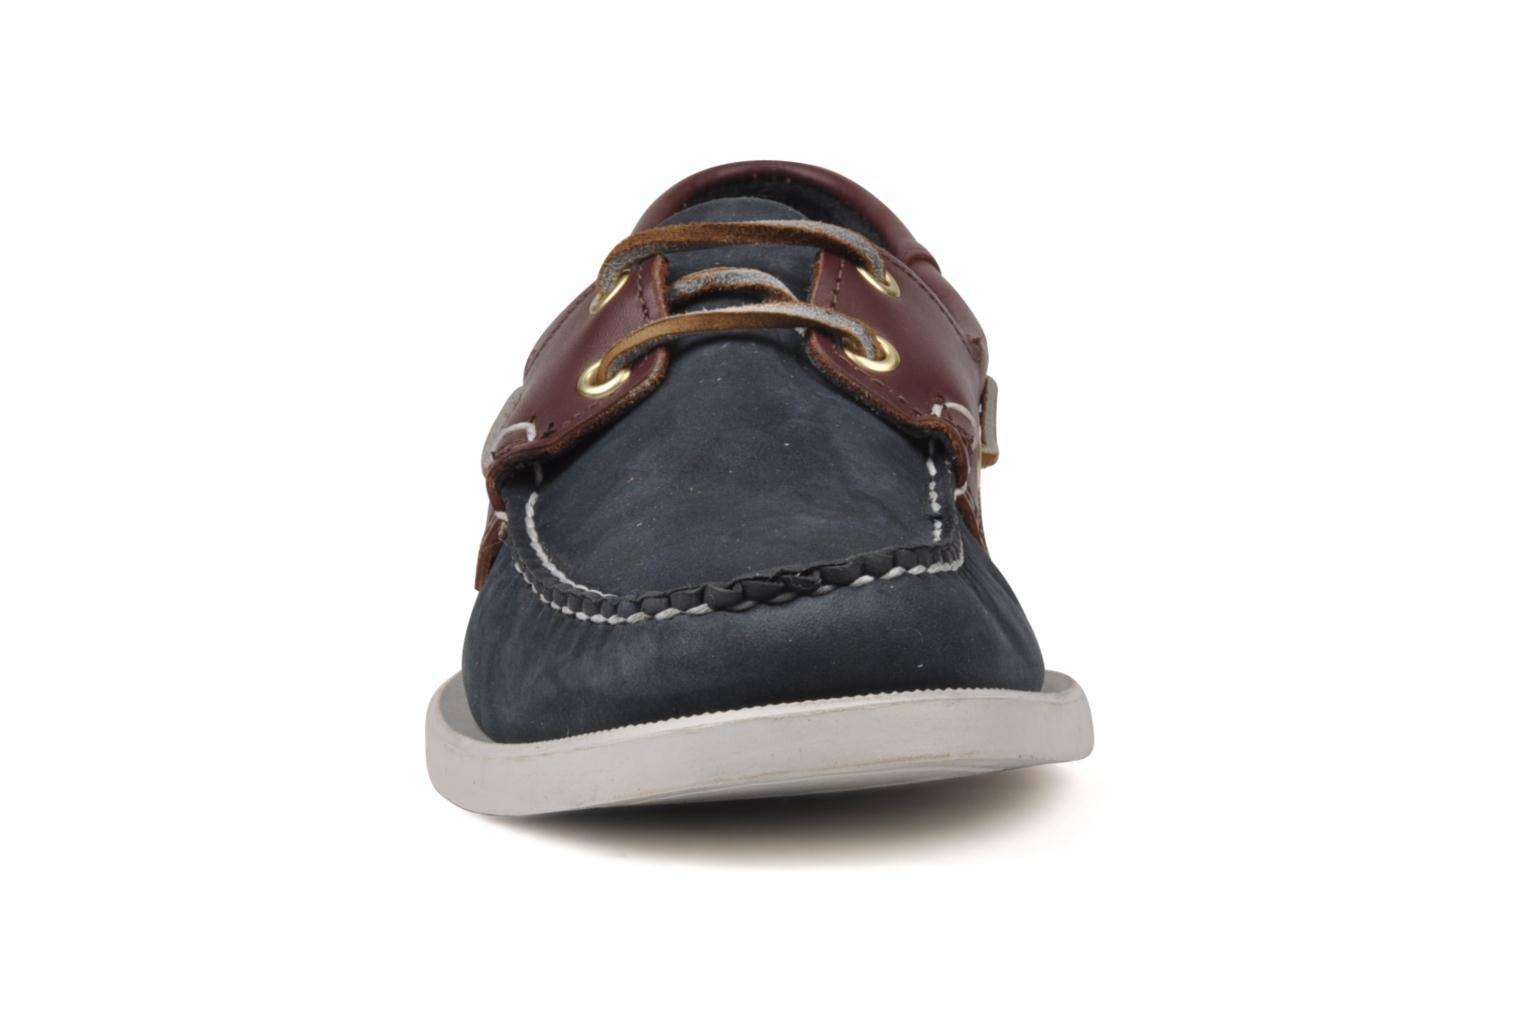 Spinnaker Navy Nubuck Brown Leather